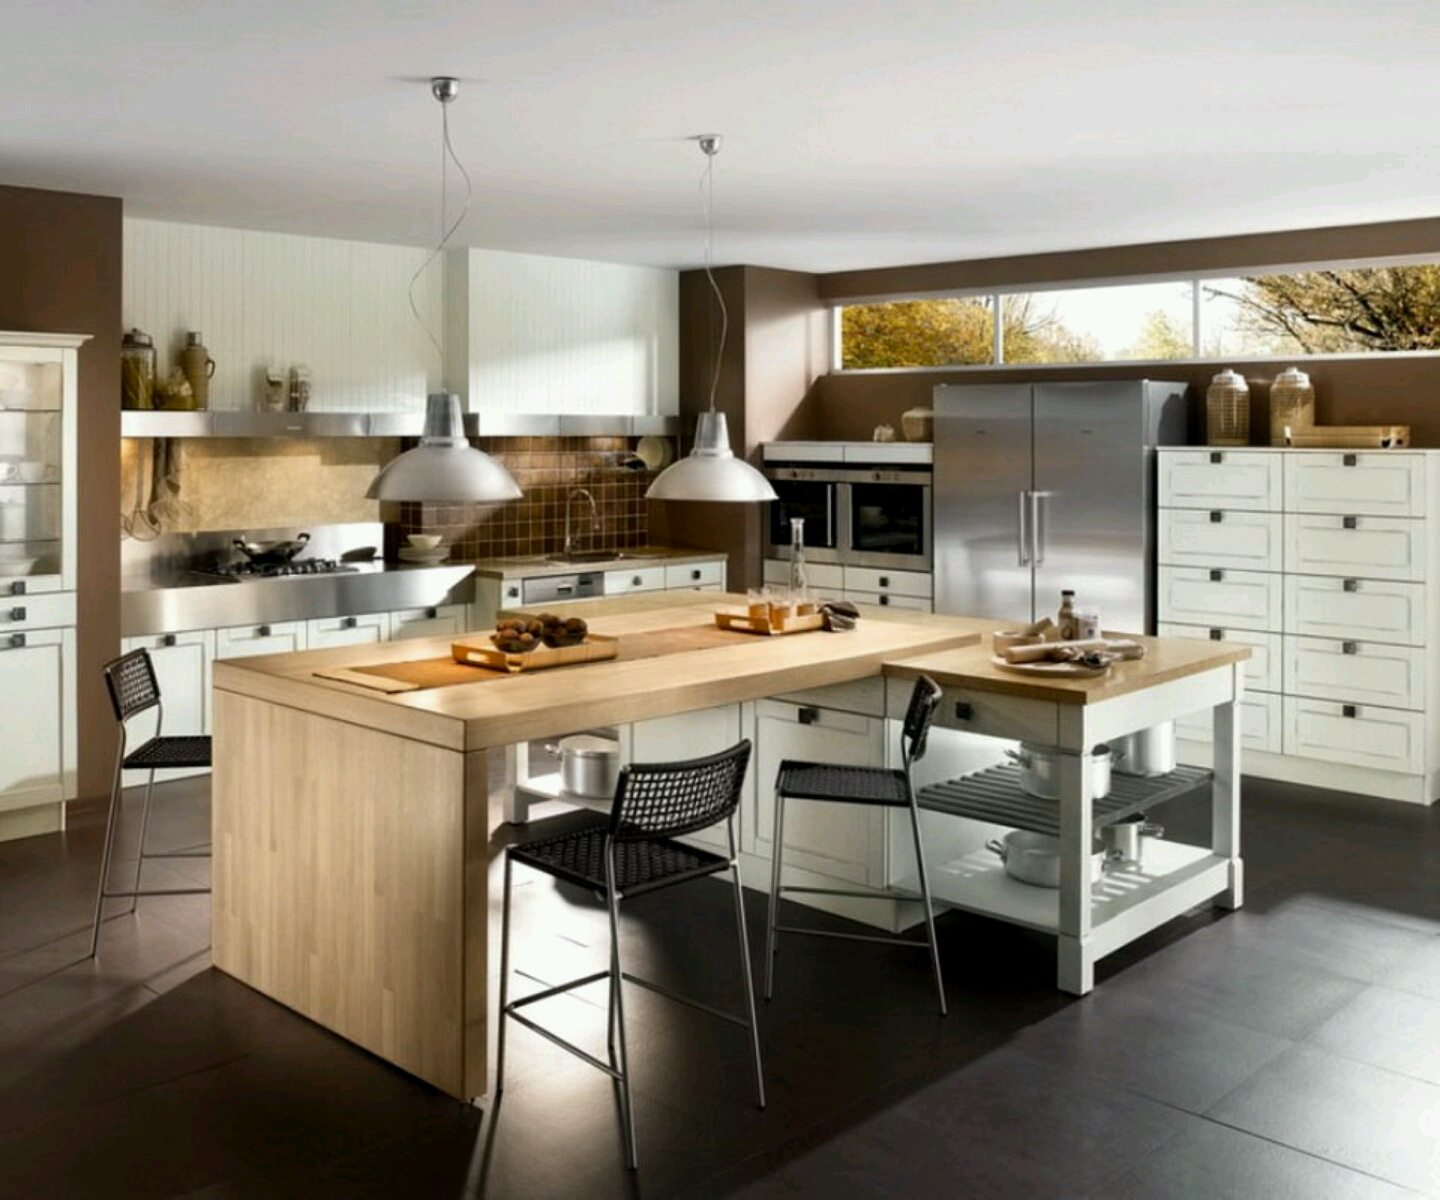 New House Kitchen Designs: New Home Designs Latest.: Modern Kitchen Designs Ideas